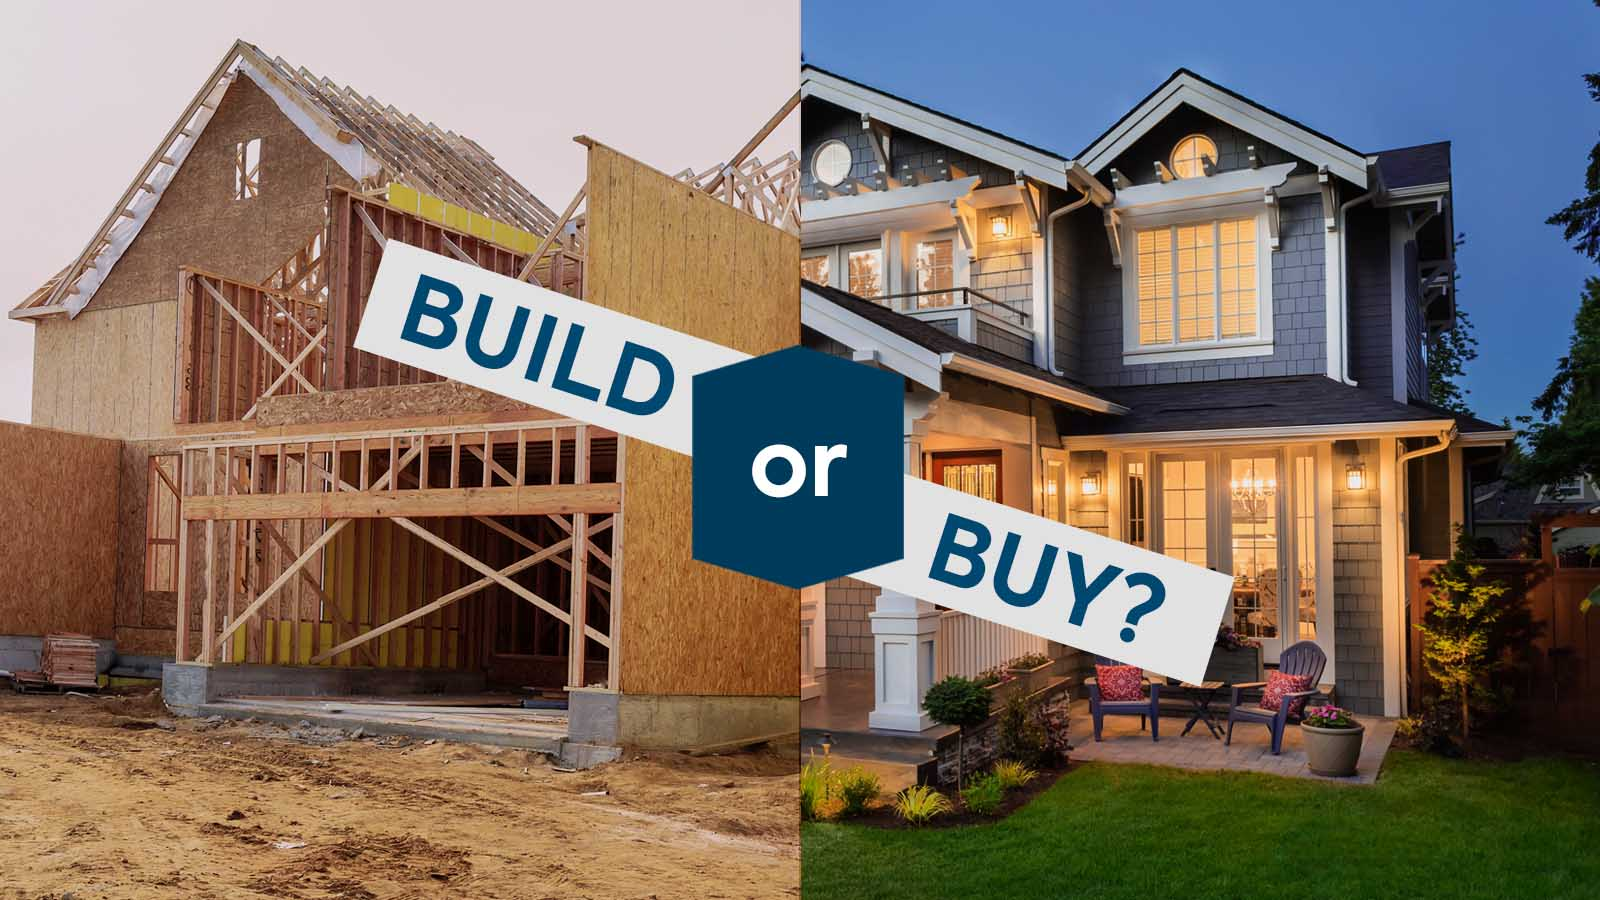 Build or Buy a House?